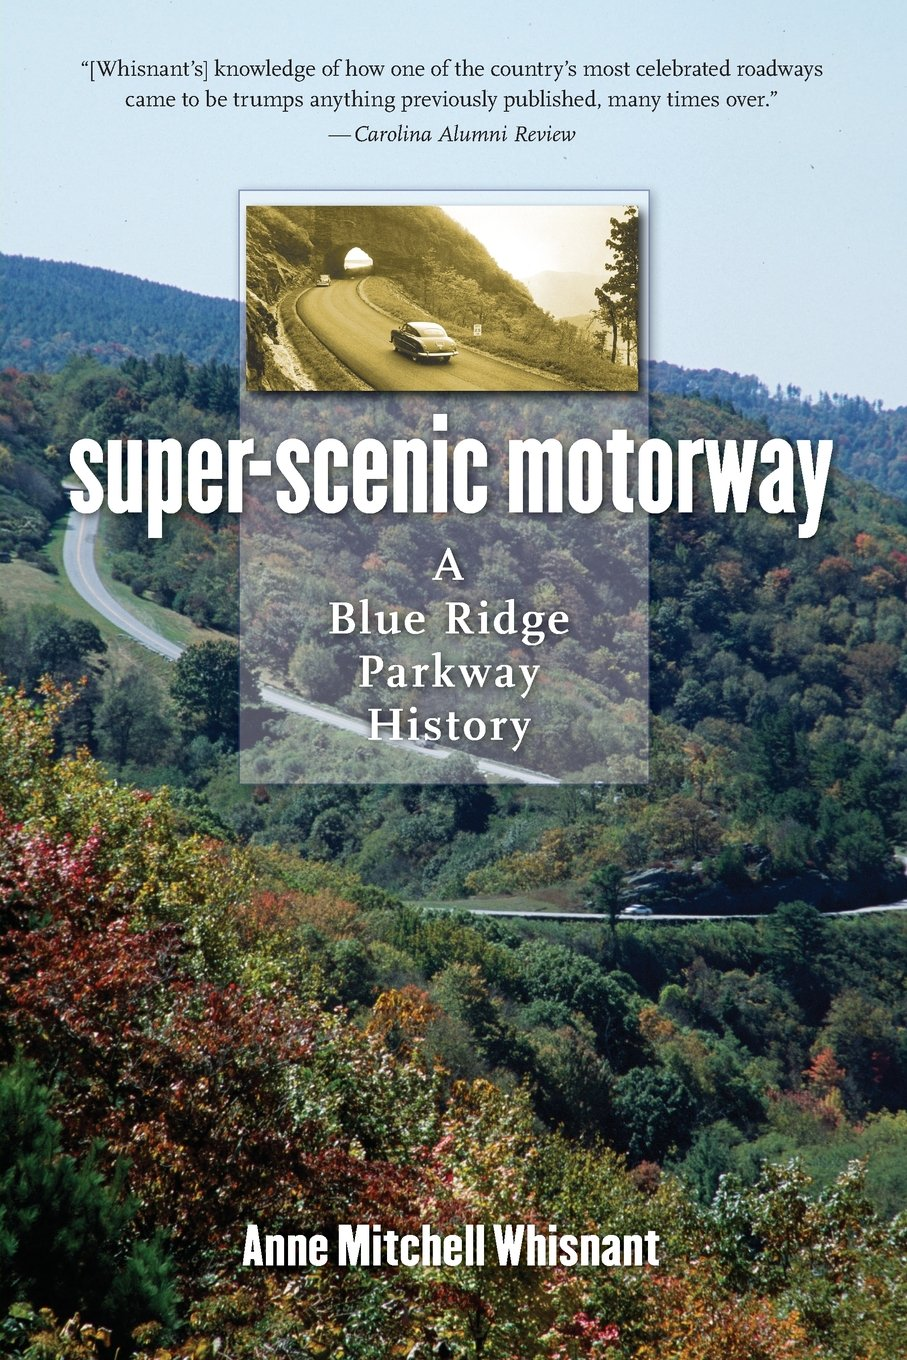 Super-Scenic Motorway: A Blue Ridge Parkway History: Anne Mitchell  Whisnant: 9780807871263: Amazon.com: Books